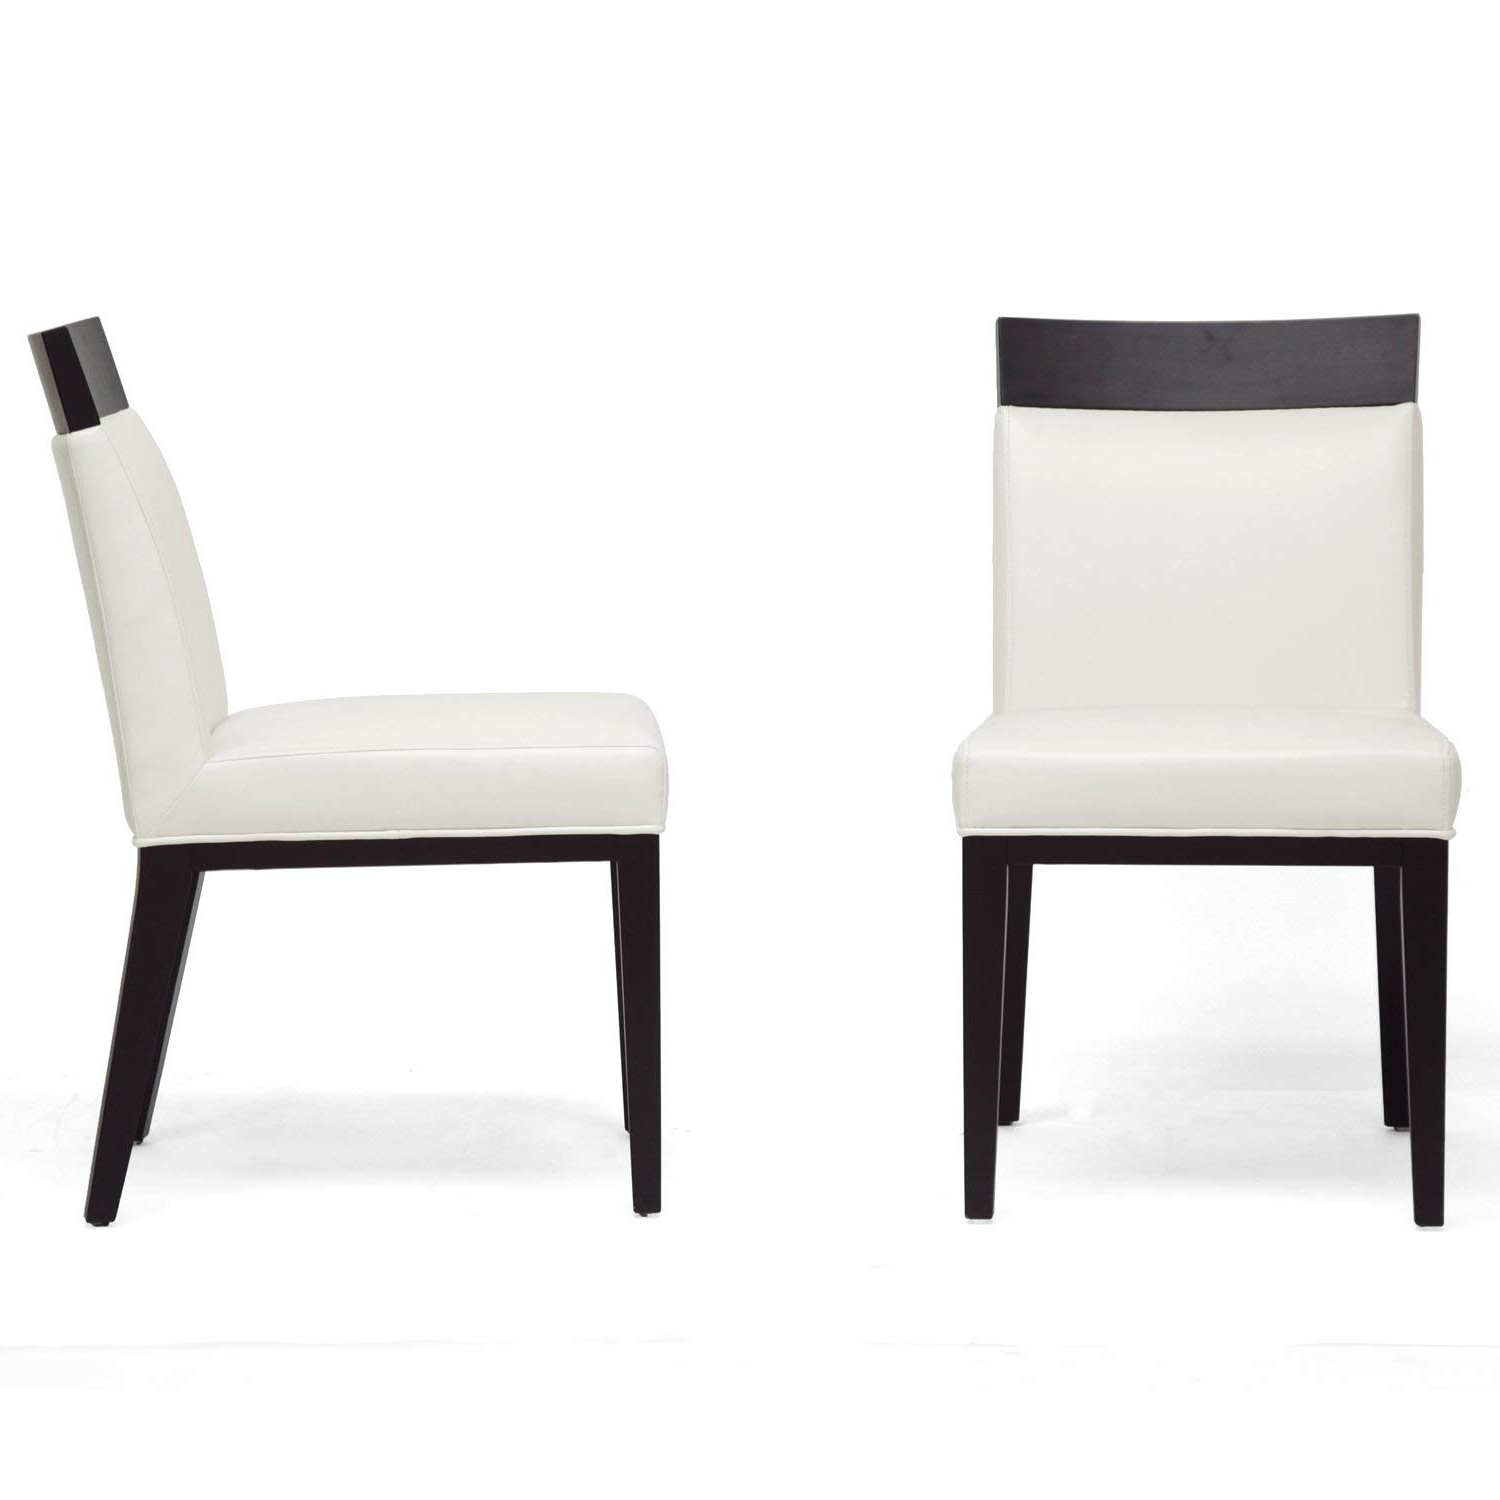 Cream Leather Dining Chairs Intended For Latest Amazon – Baxton Studio Clymene Black Wood And Cream Leather (View 8 of 25)